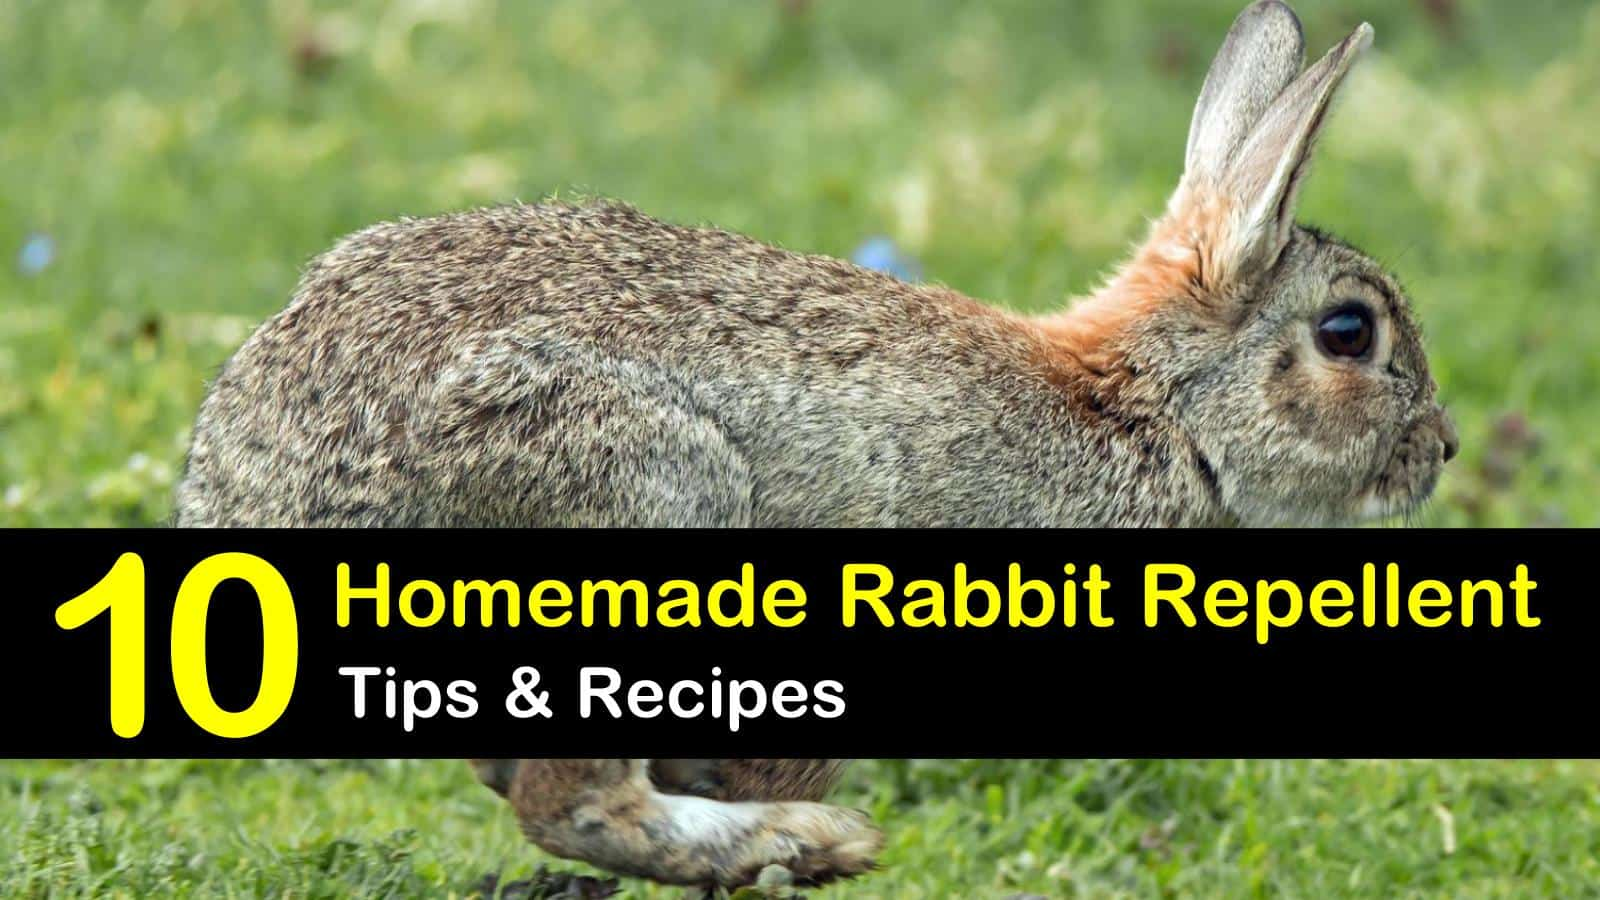 homemade rabbit repellent titleimg1